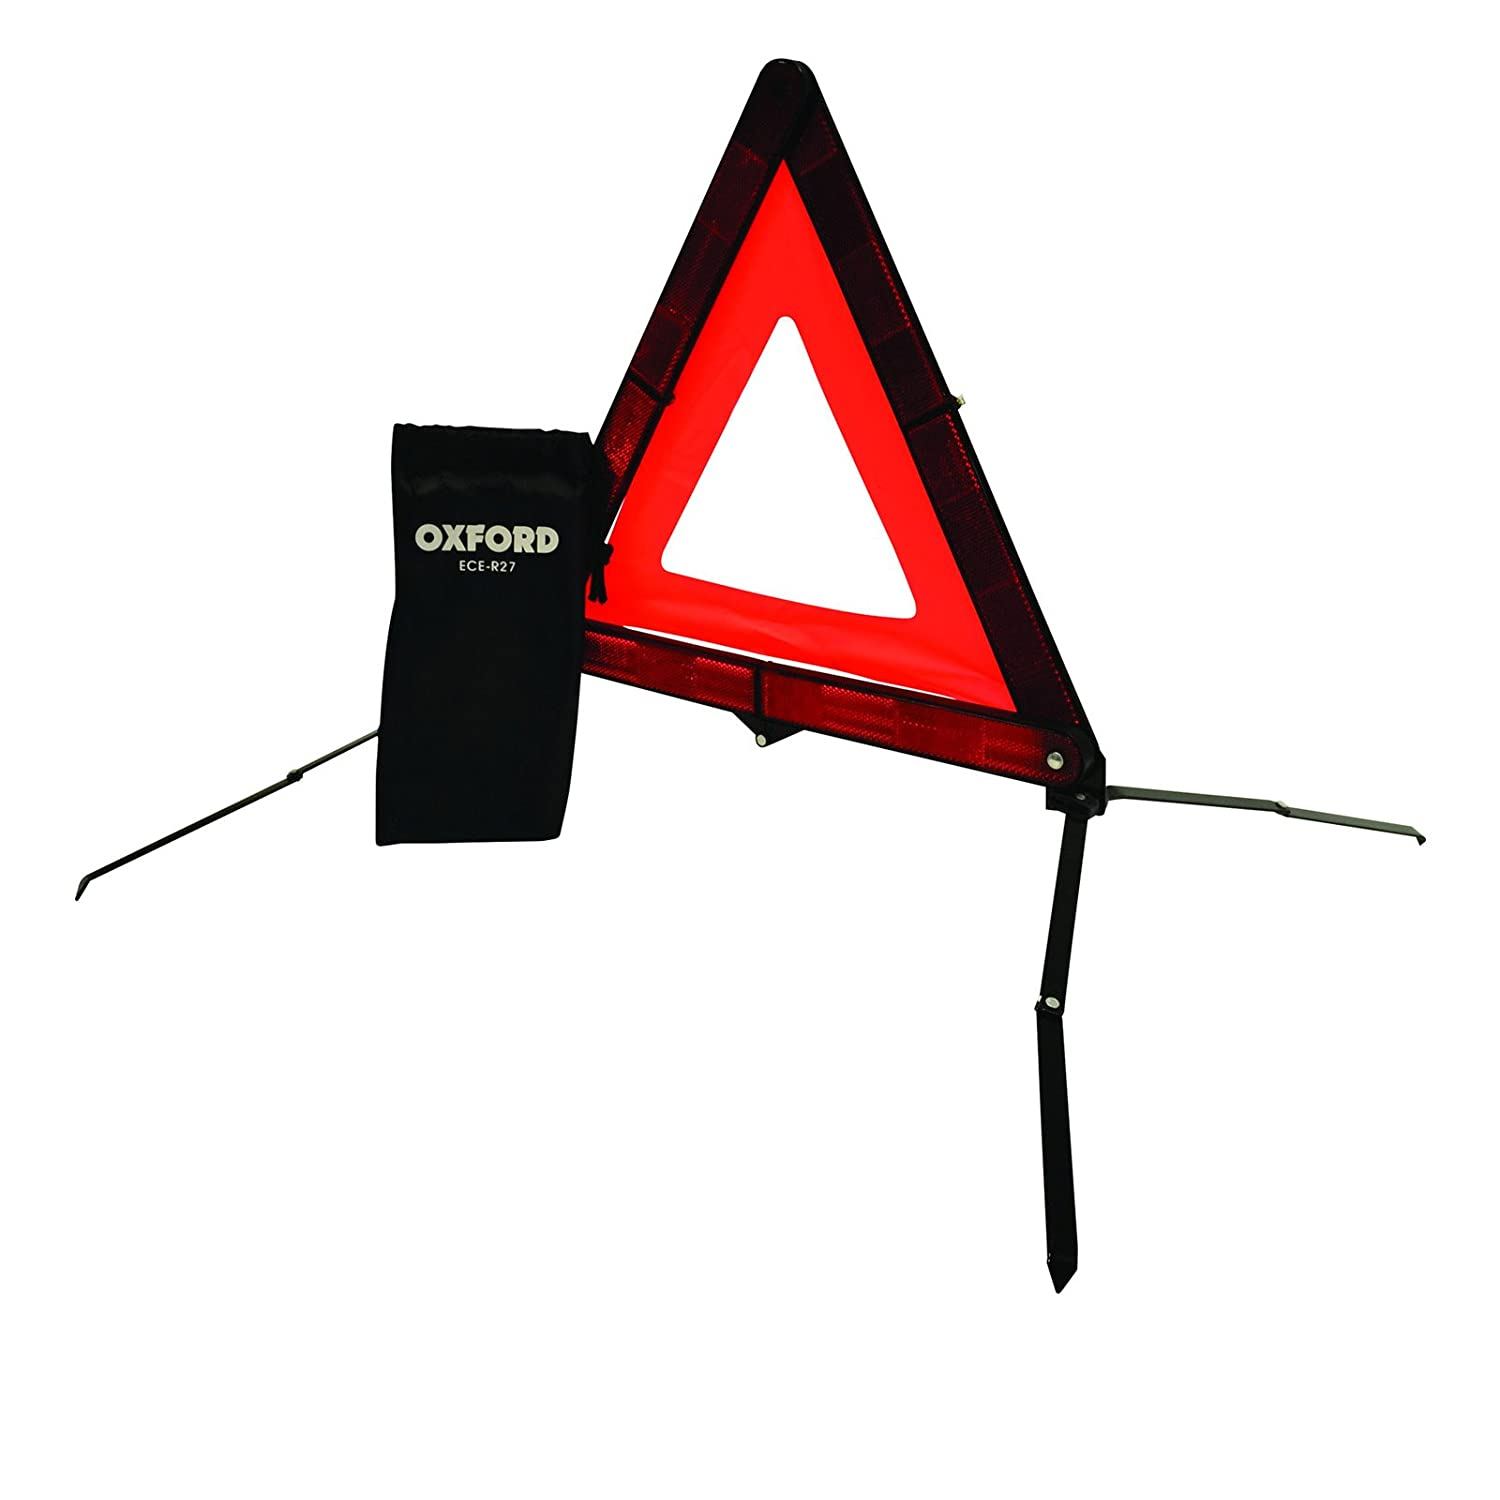 Oxford Compact Energency Warning Triangle - Red OF609